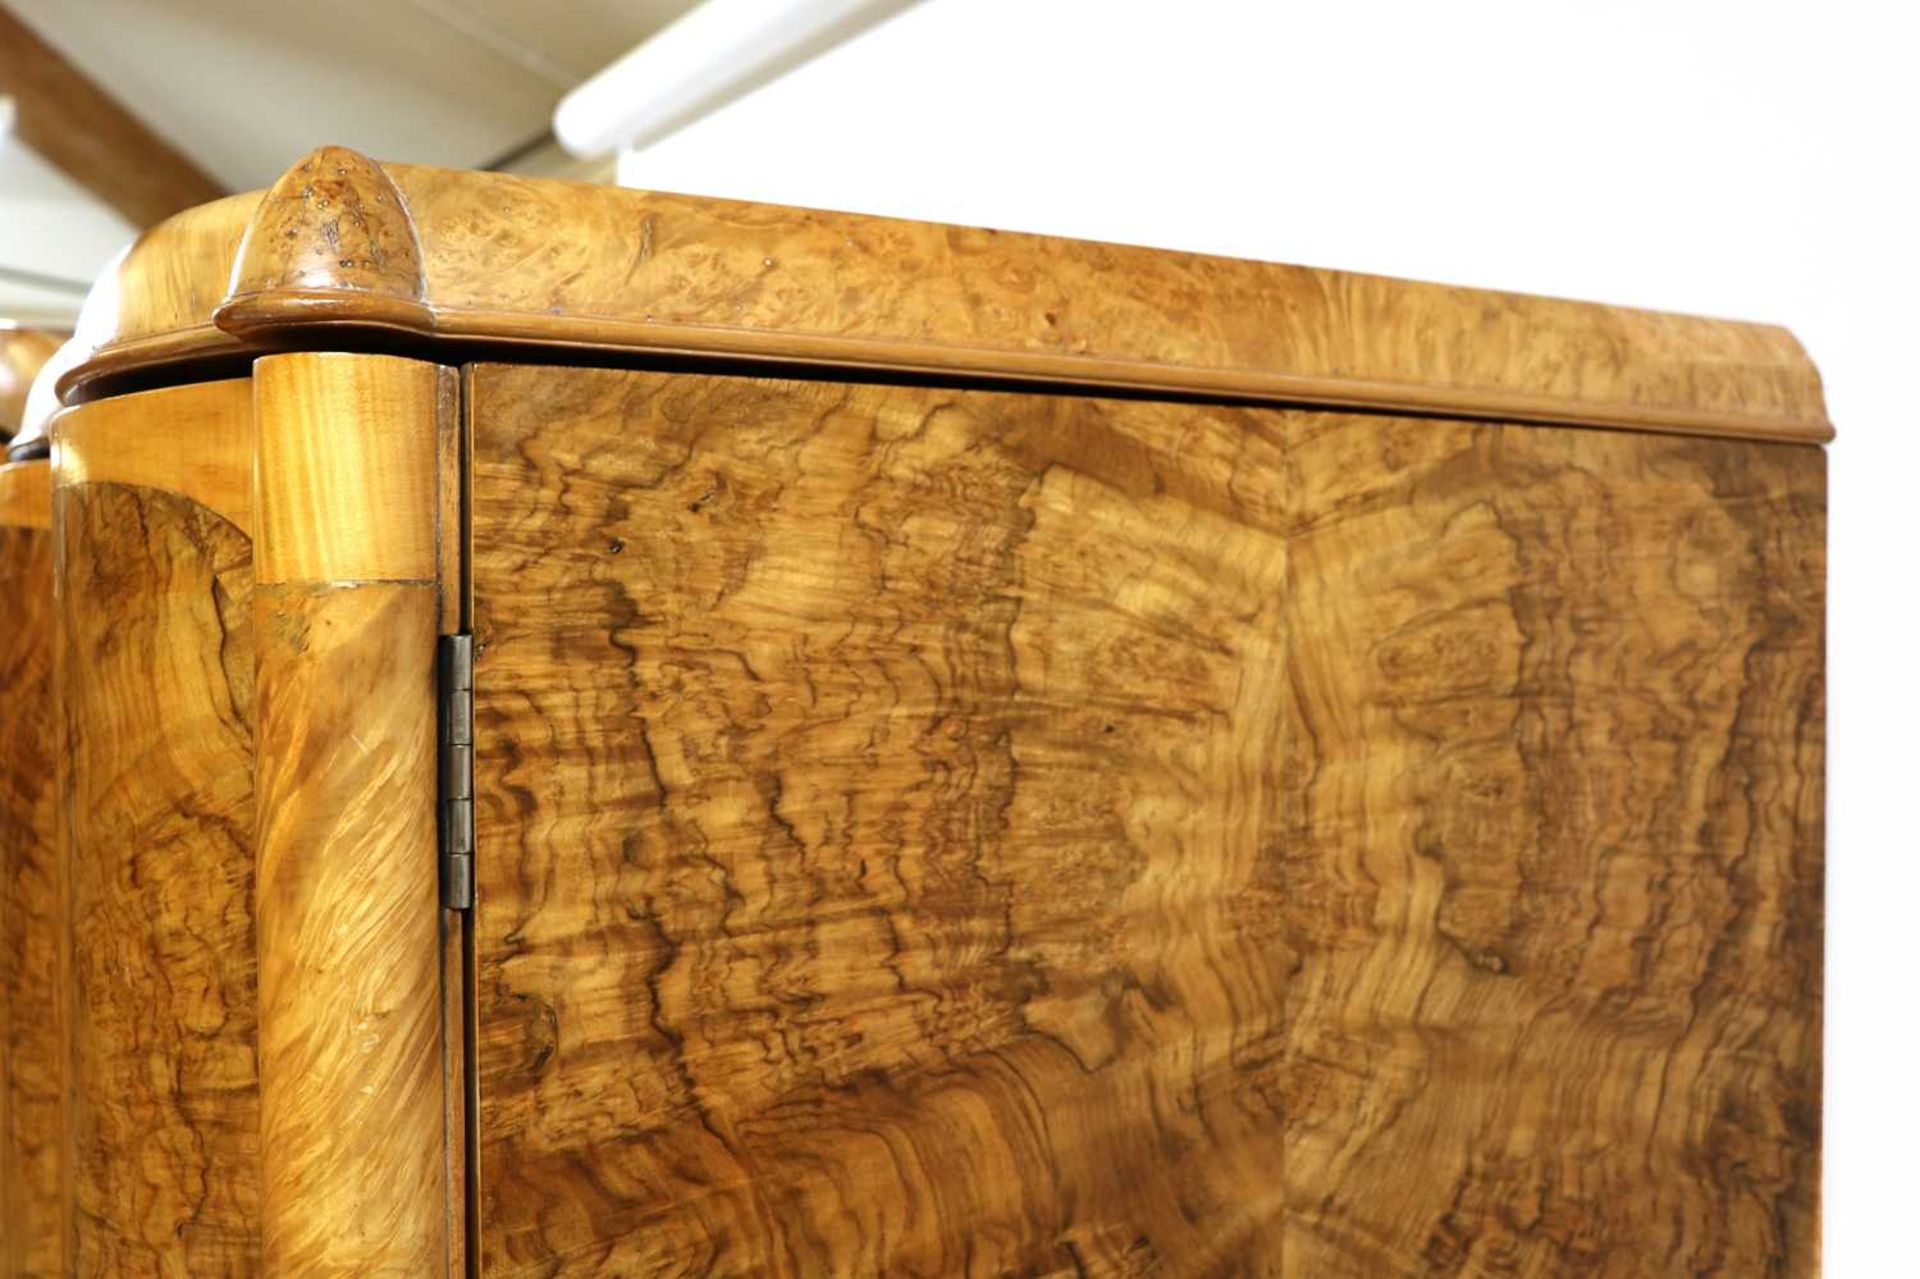 An Art Deco burr walnut and maple bedroom suite, - Image 31 of 45